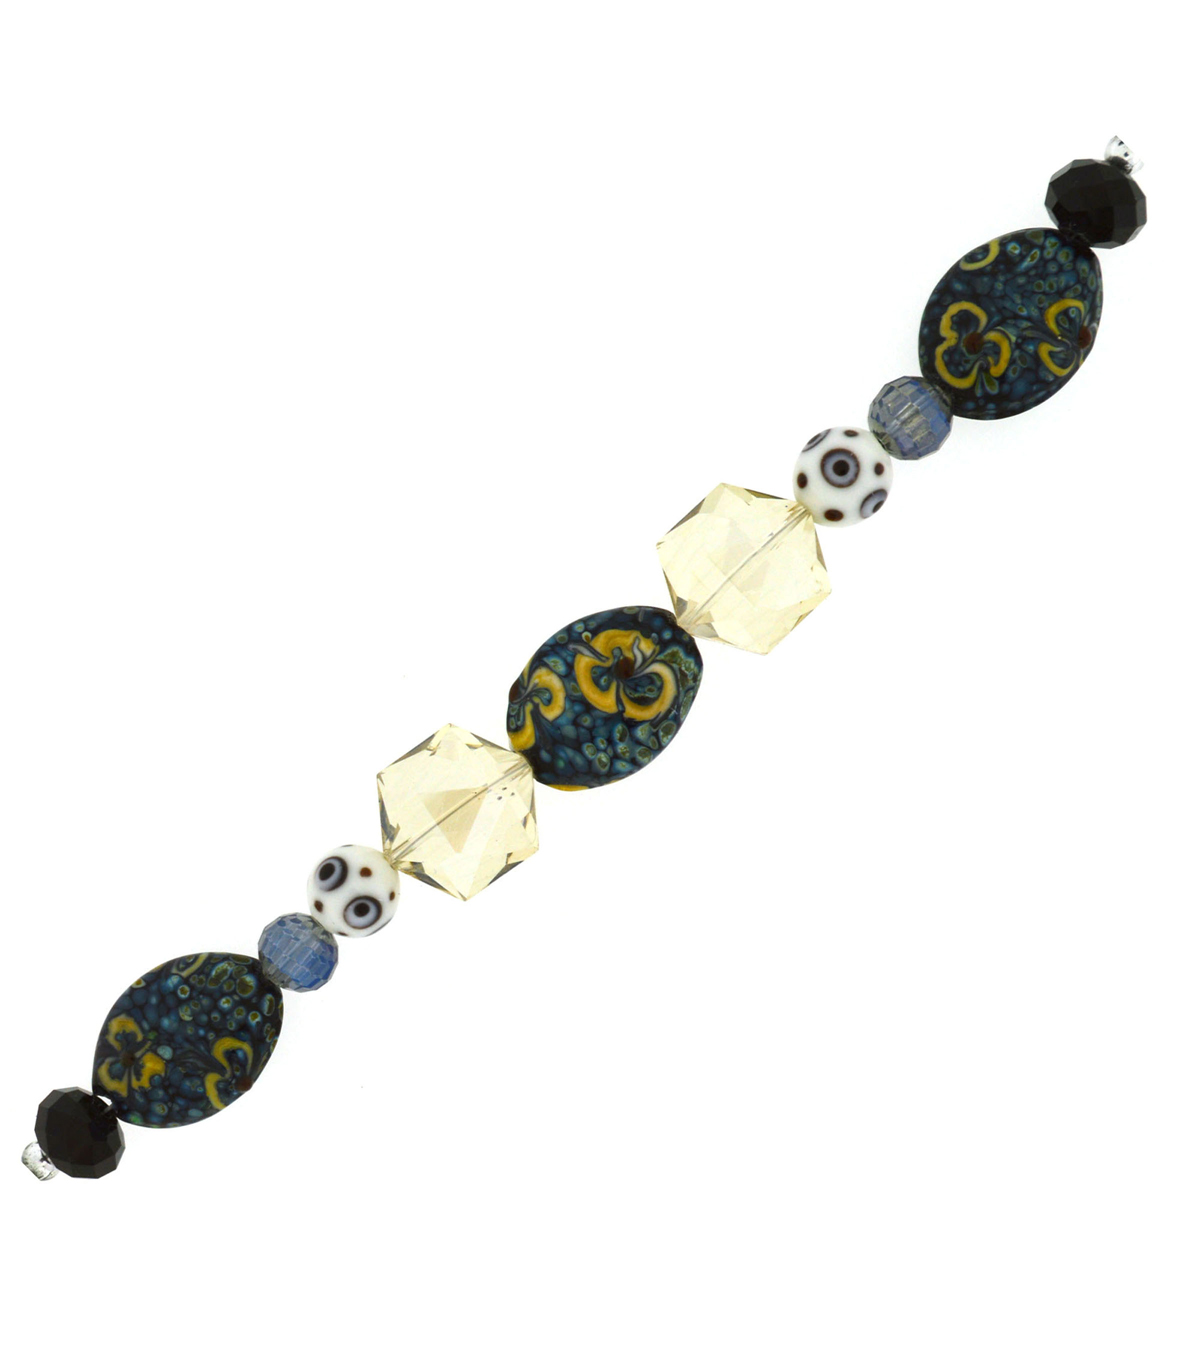 7 Inch Lampwork Strands By Jesse James